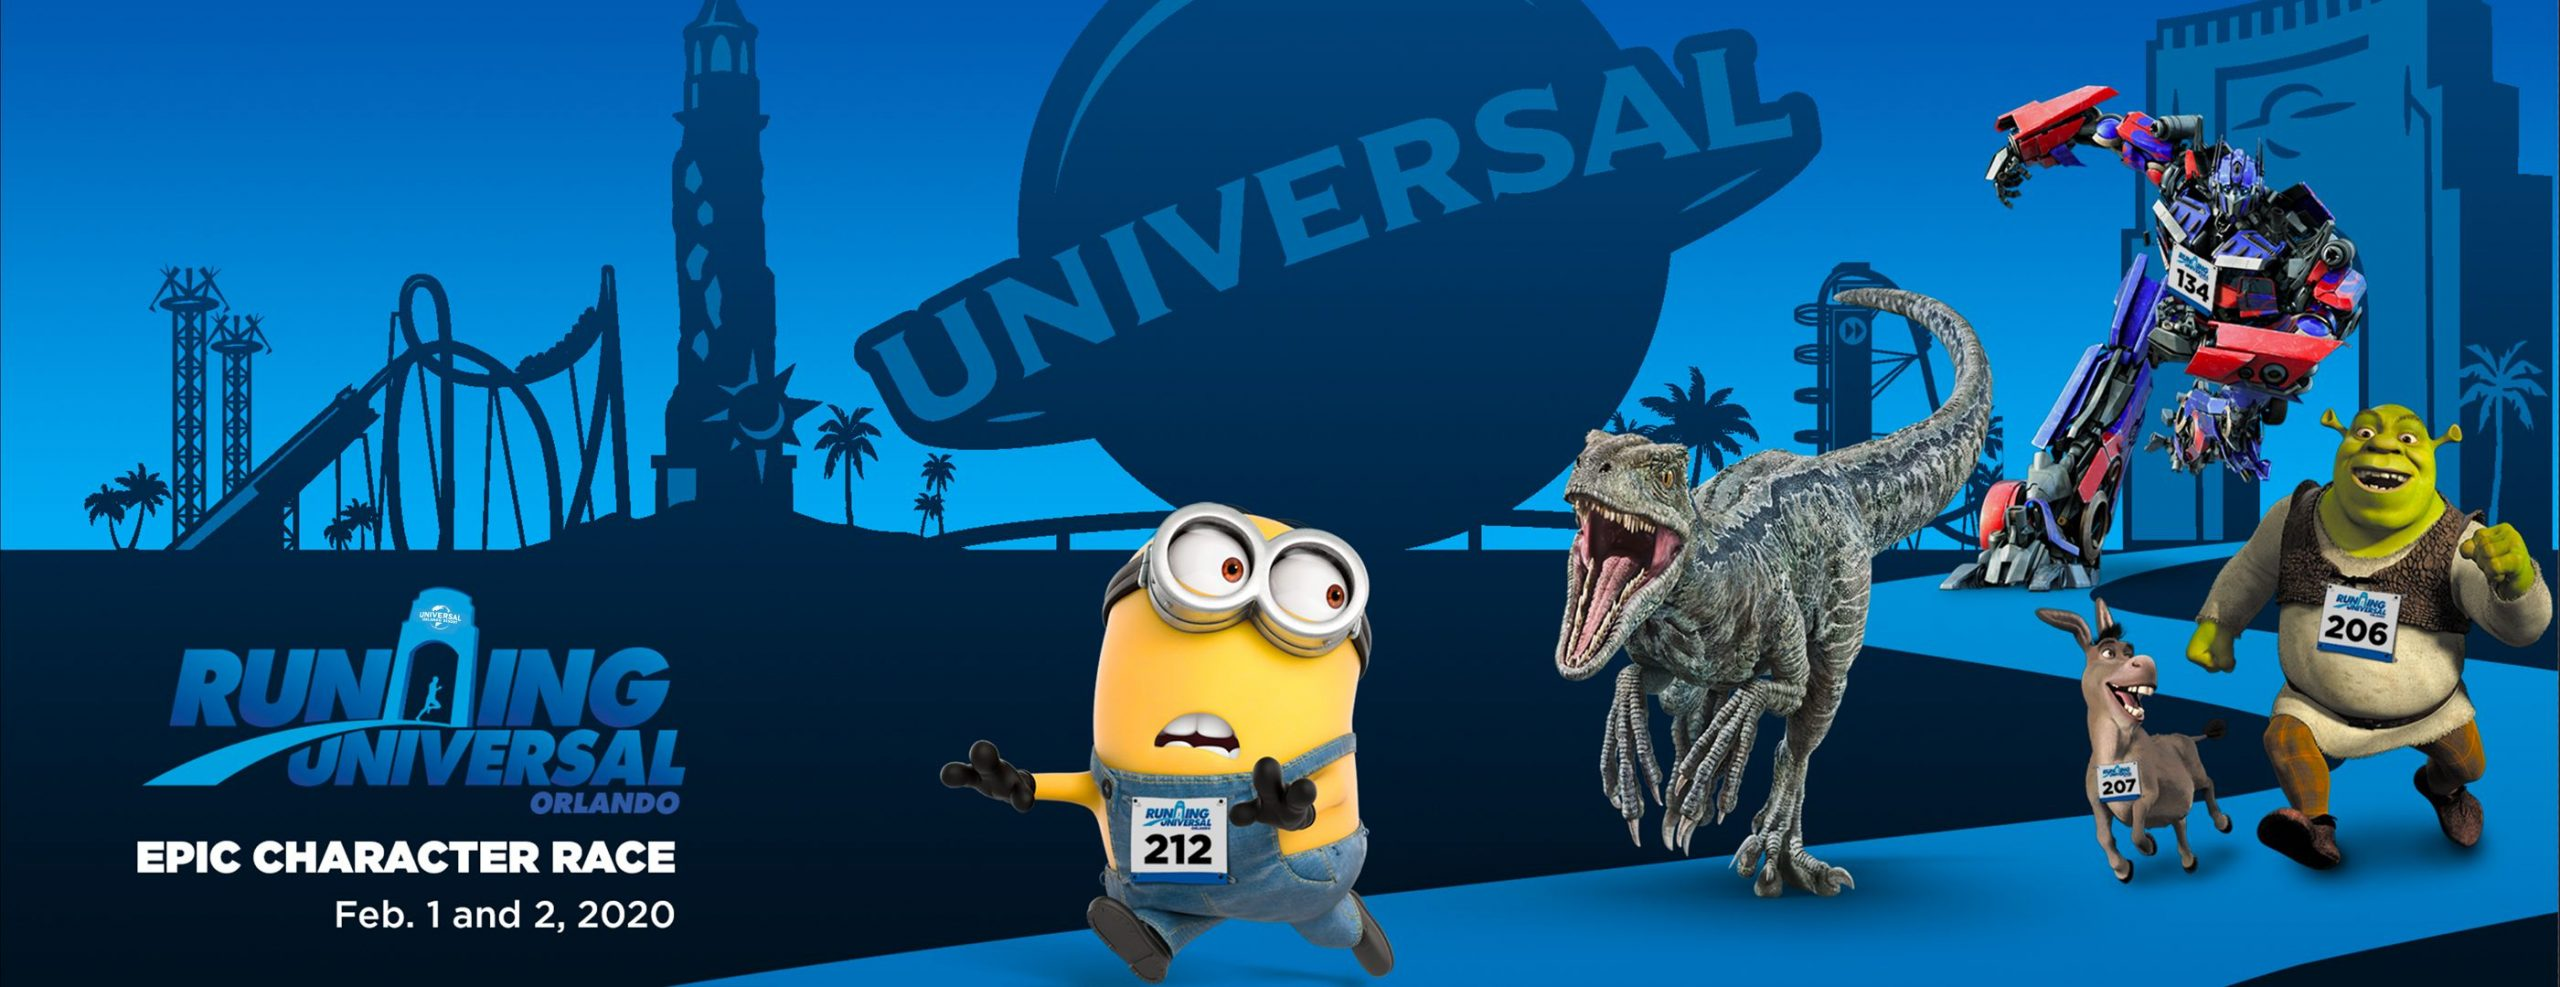 Universal Studios Set To Host Its First Races In February